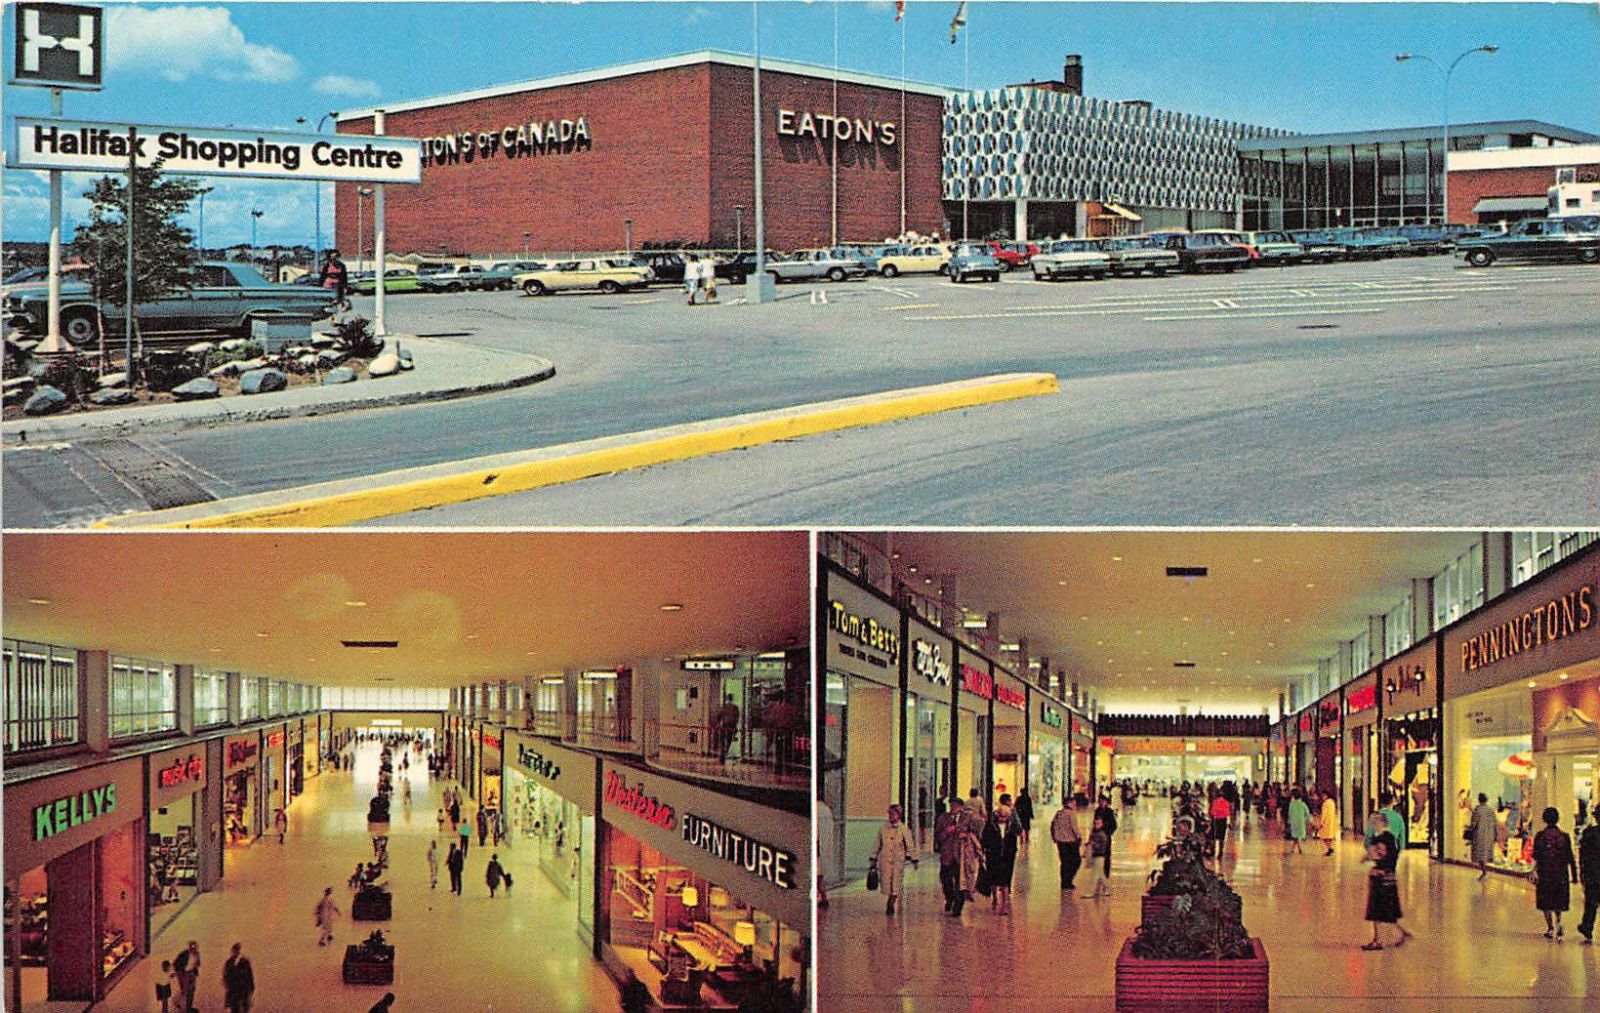 Nova Scotia Postcard Canada Halifax Shopping Centre Ebay Nova Scotia Halifax Shopping Center